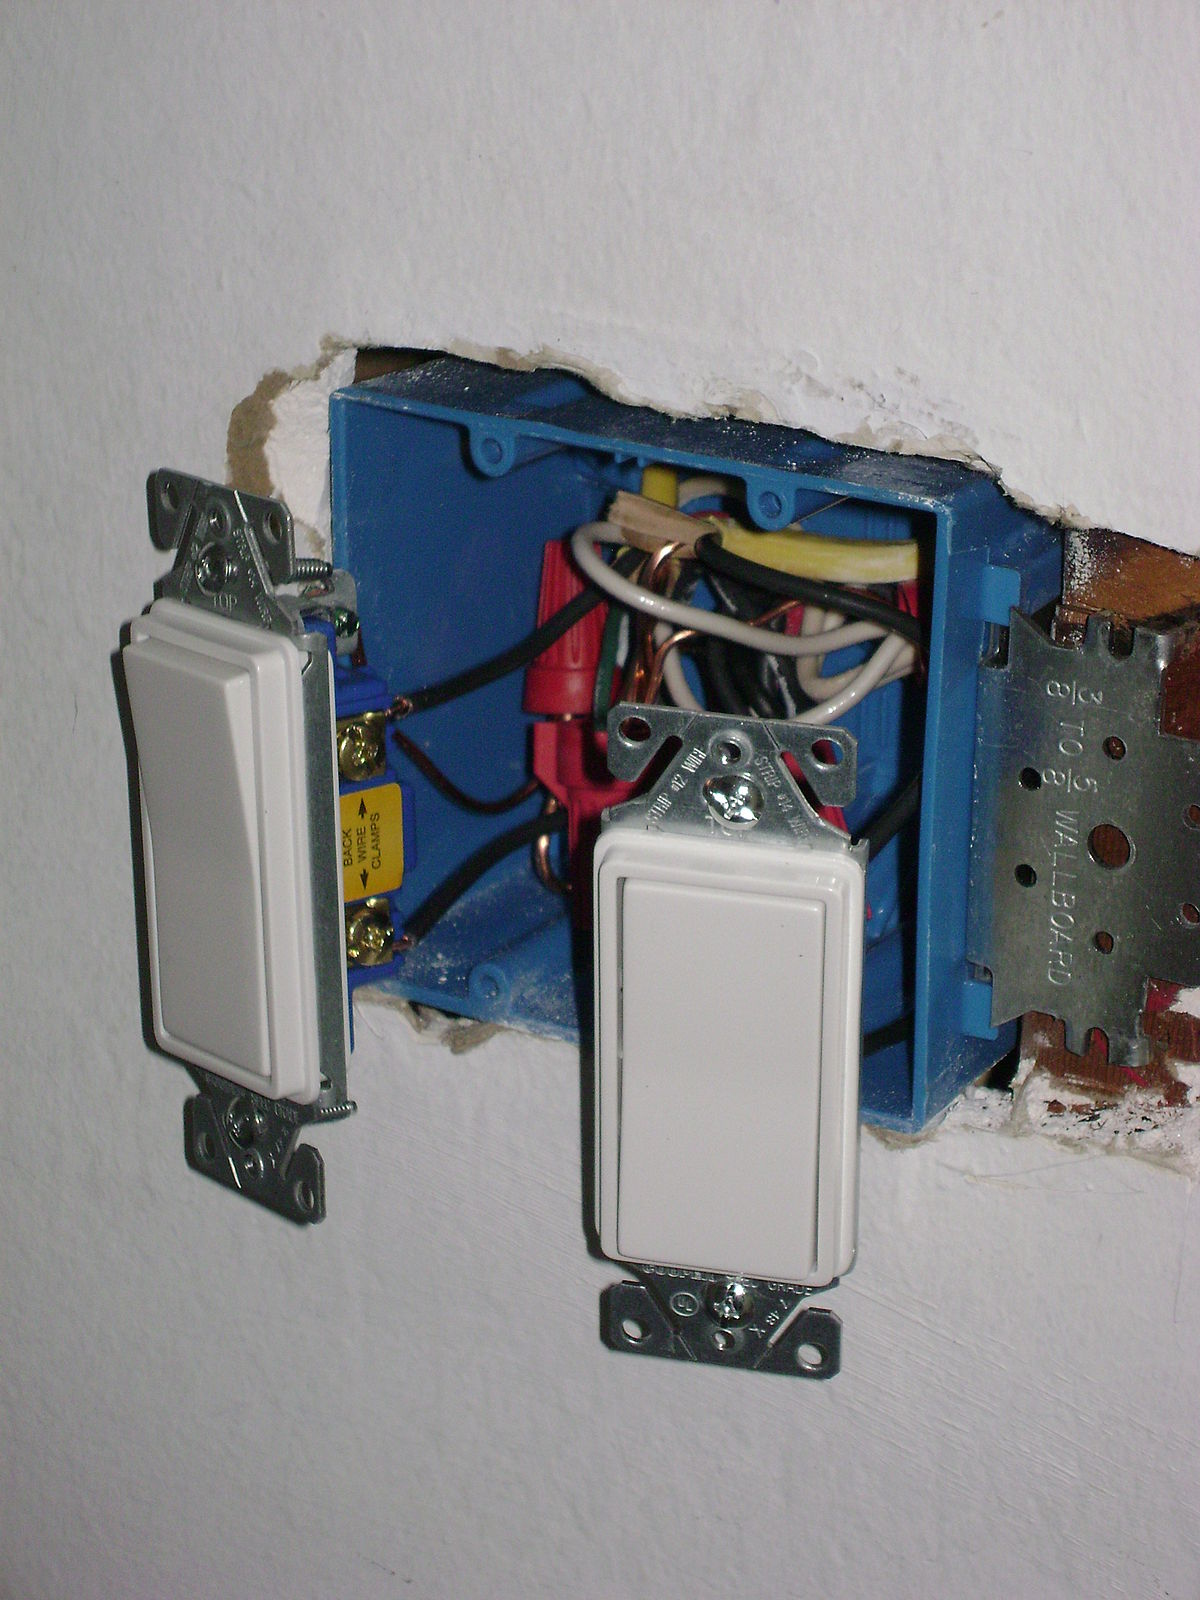 Homemade Fuse Box Wiring Diagram Bots Home Circuit Breaker Box Home Made Fuse  Box Holder